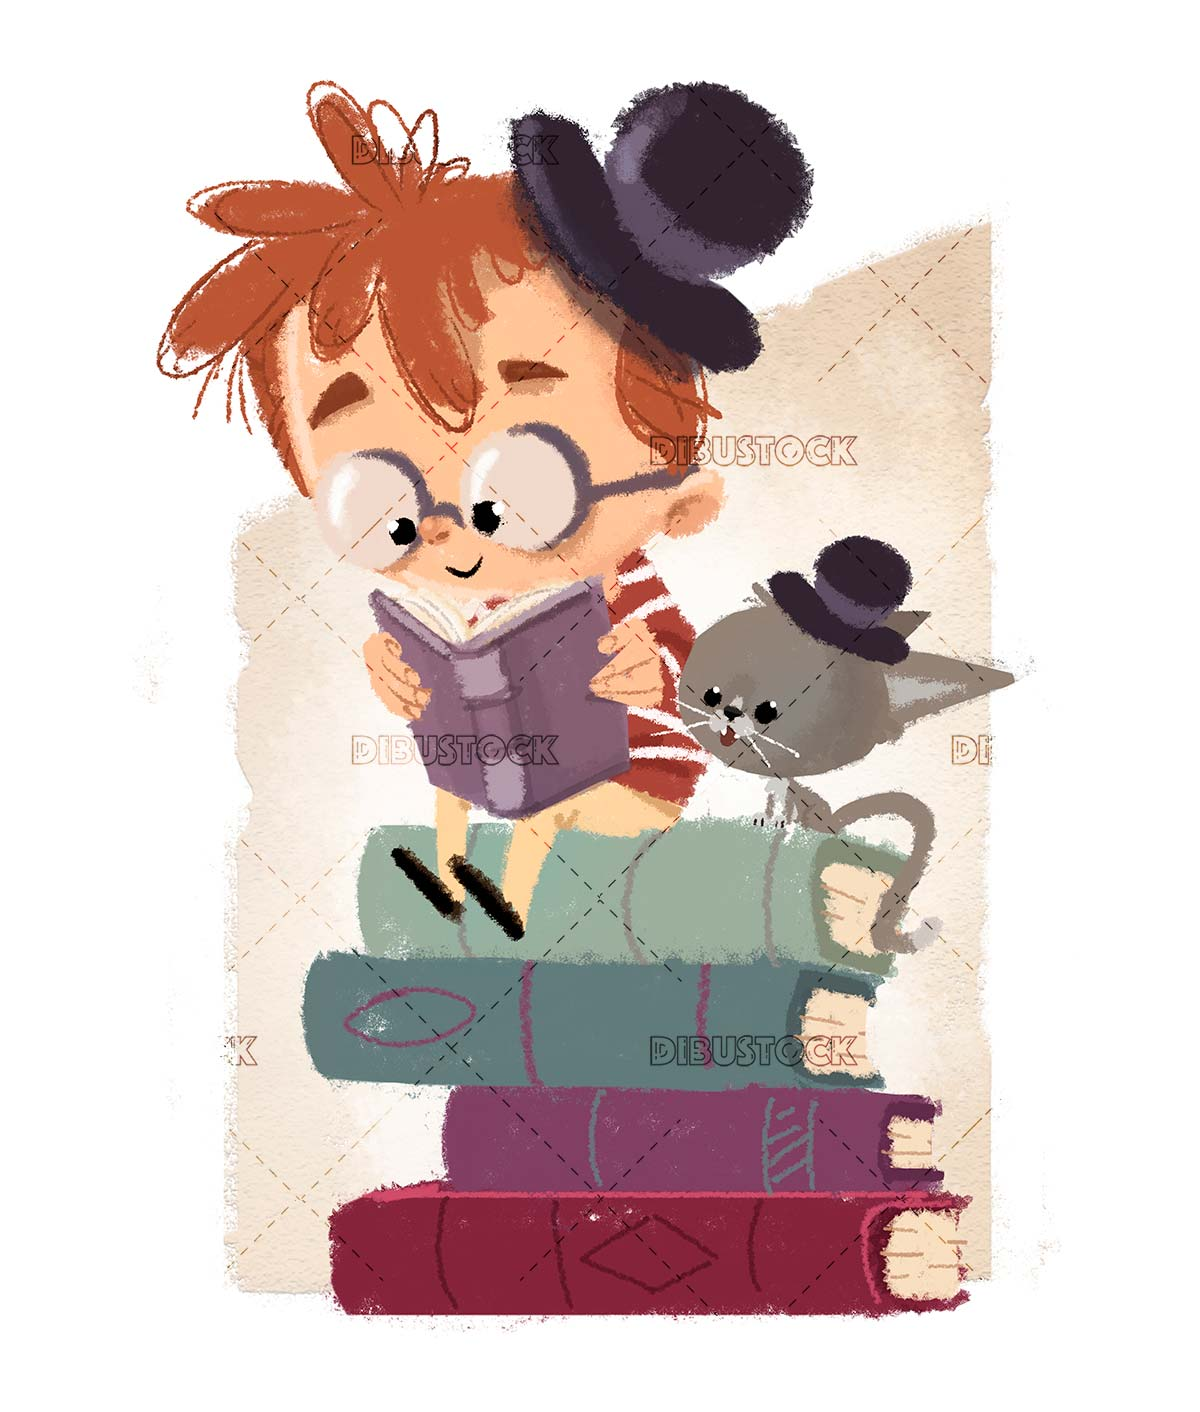 Boy and cat reading climbed on top of books